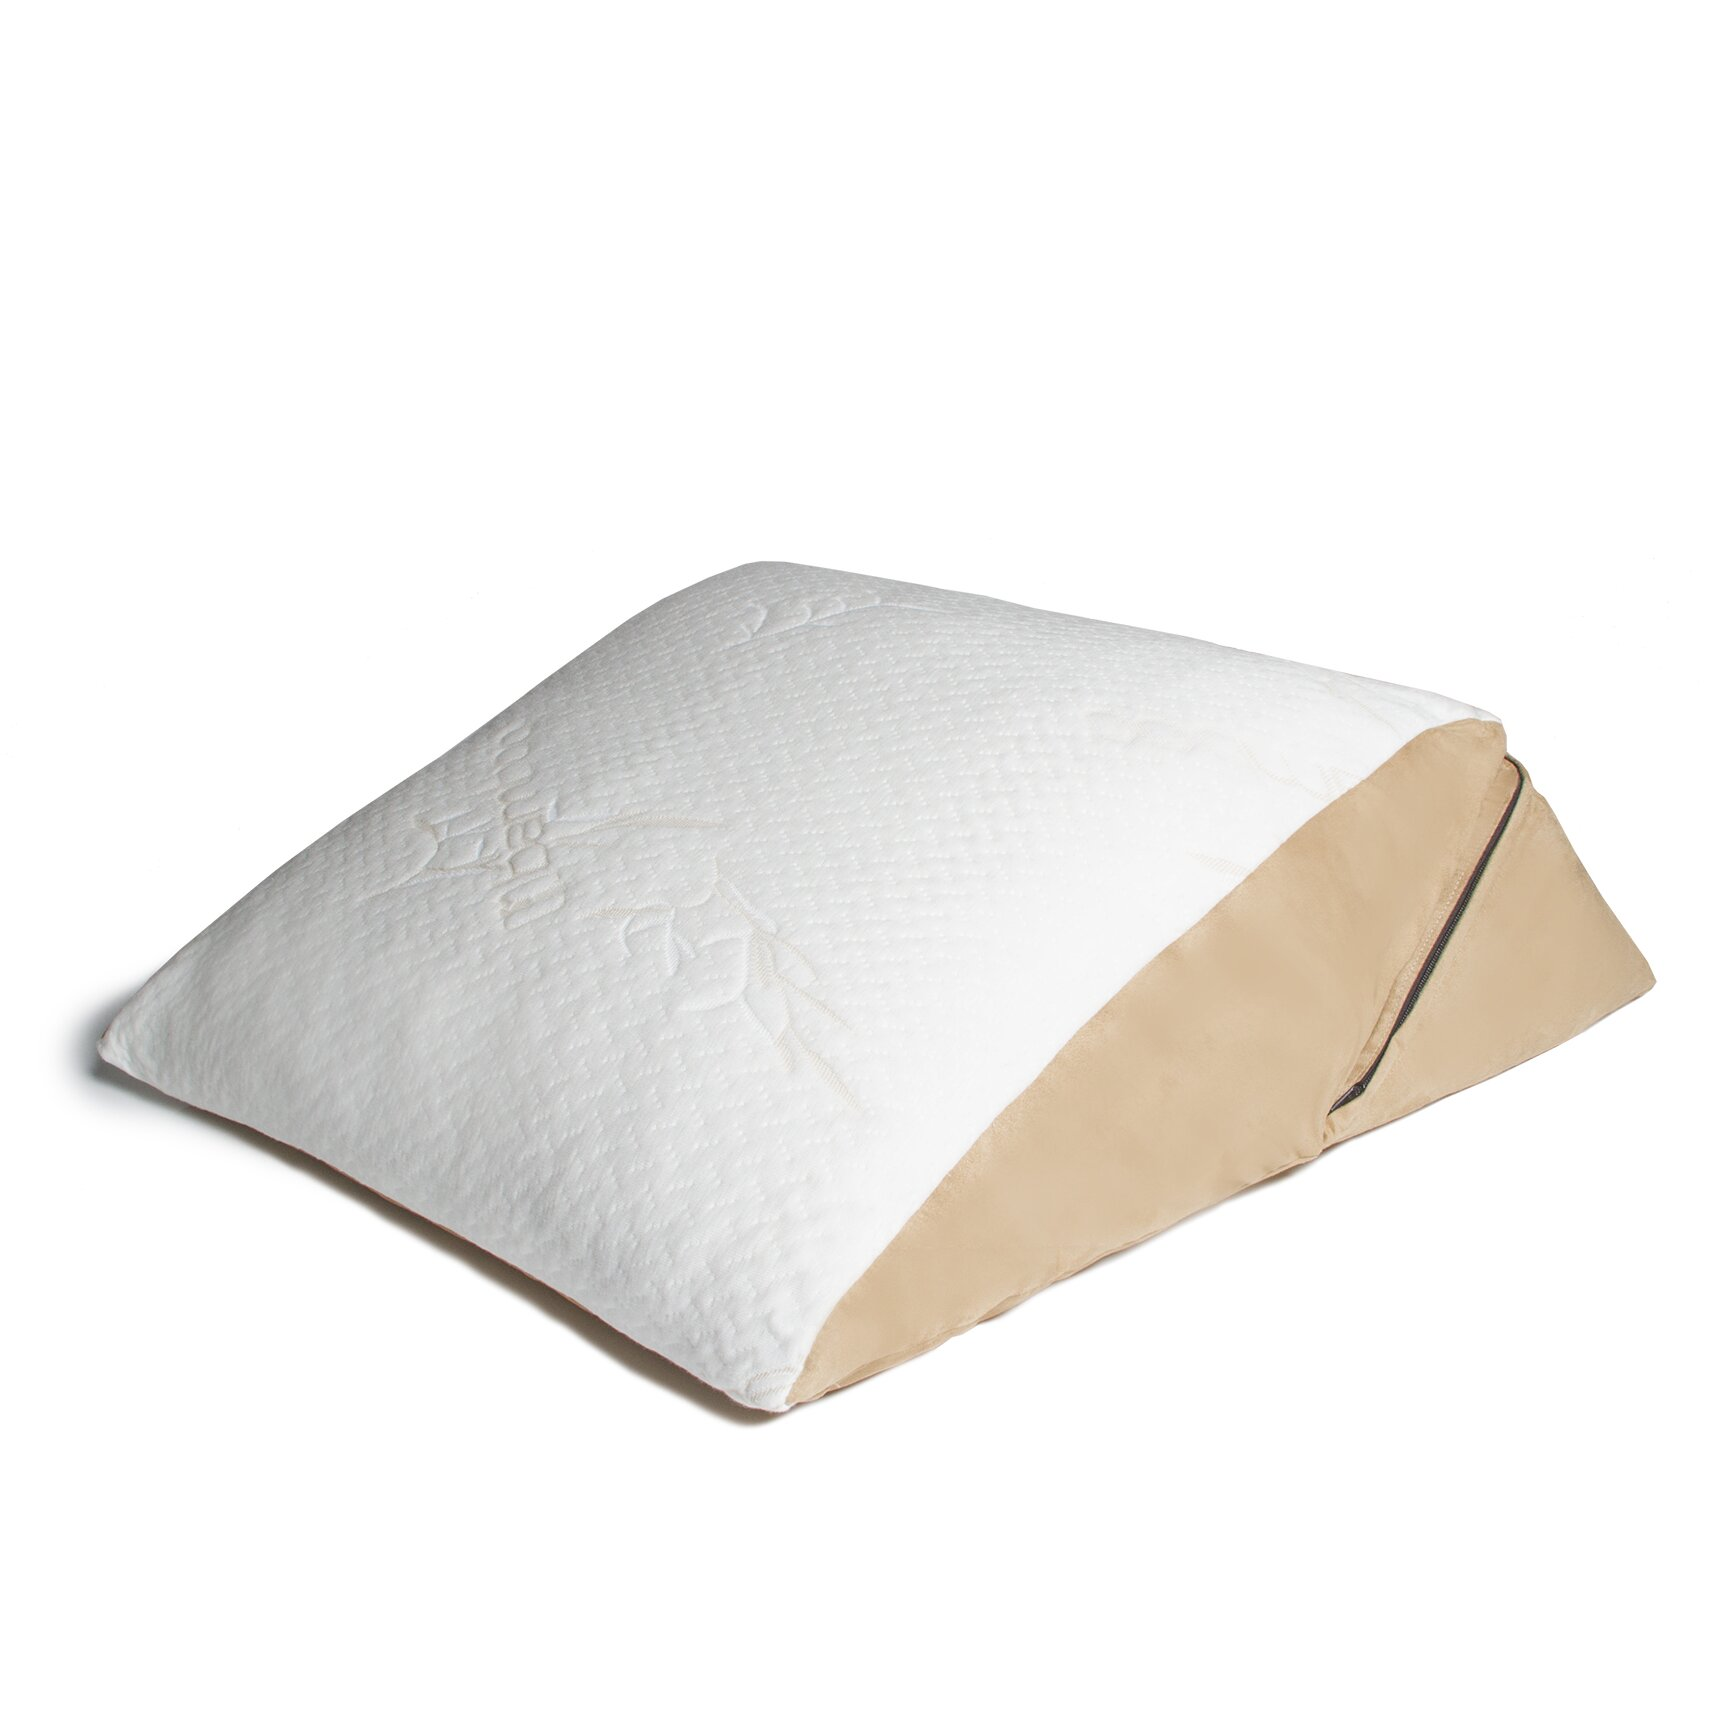 Memory Foam Mattress With Bamboo Cover Mega Deals And